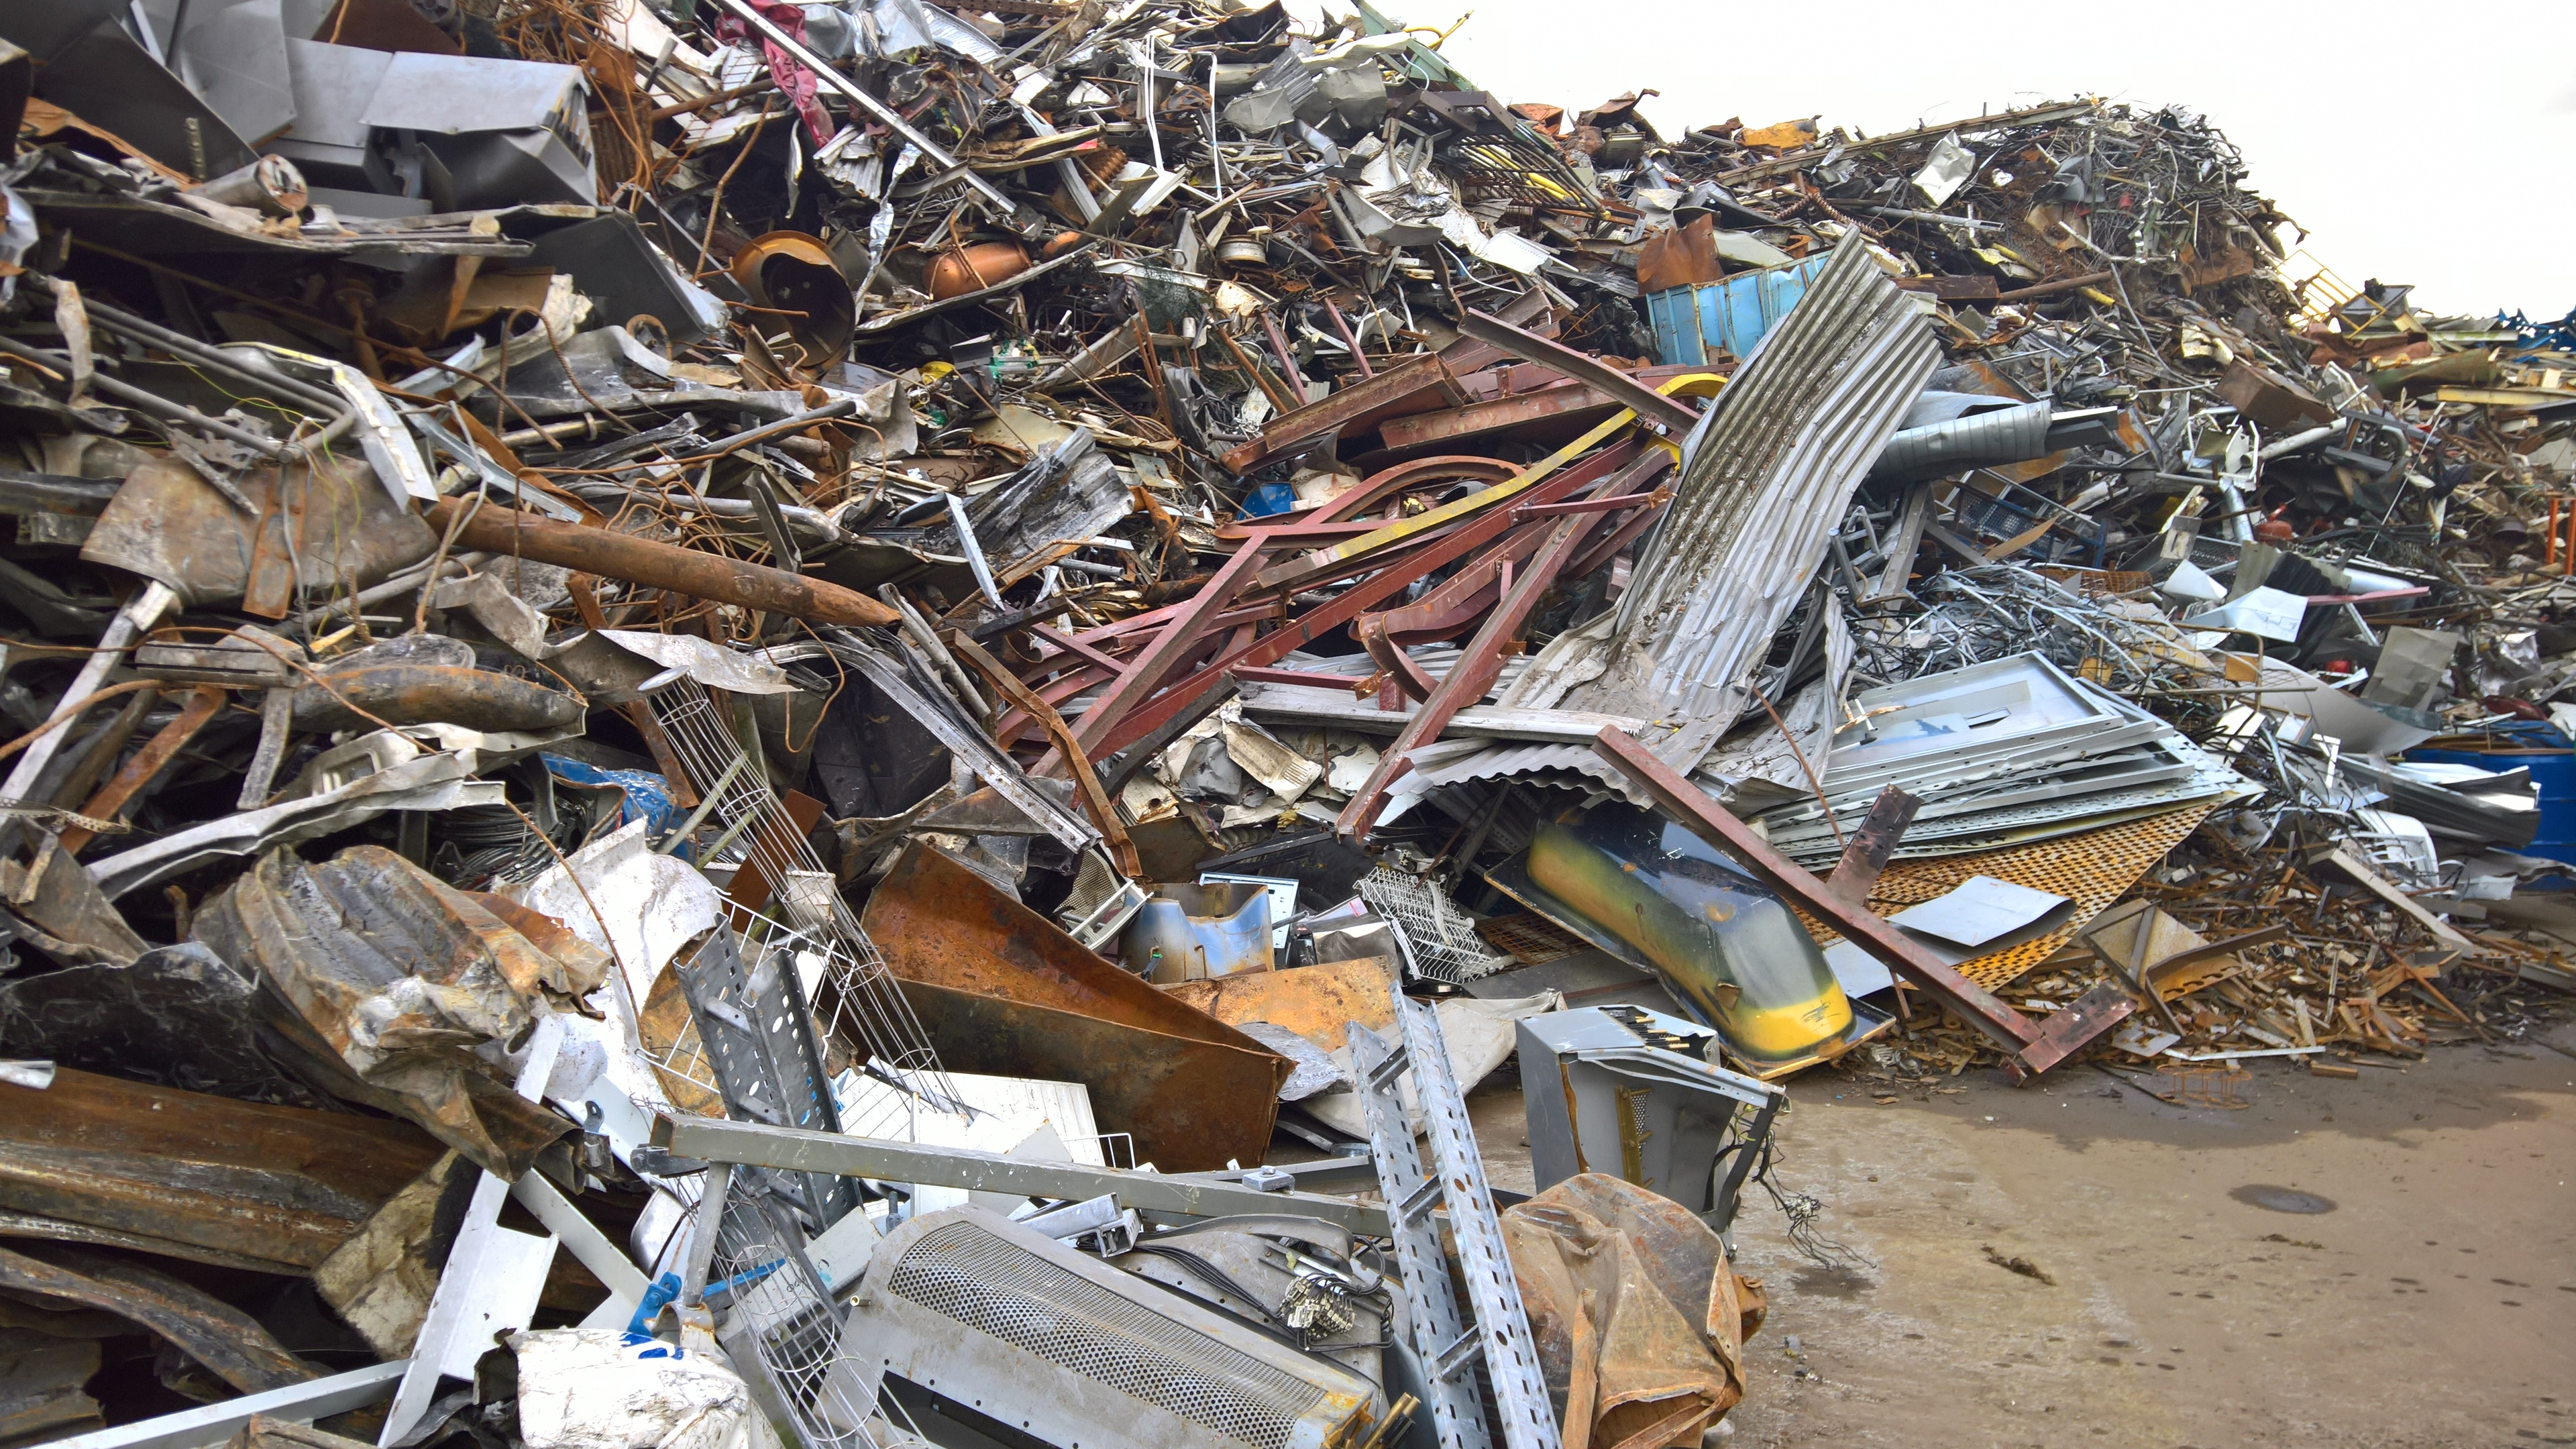 Global Metal Recycling Market Comprehensive SWOT Study & Investment Analysis 2019 to 2028